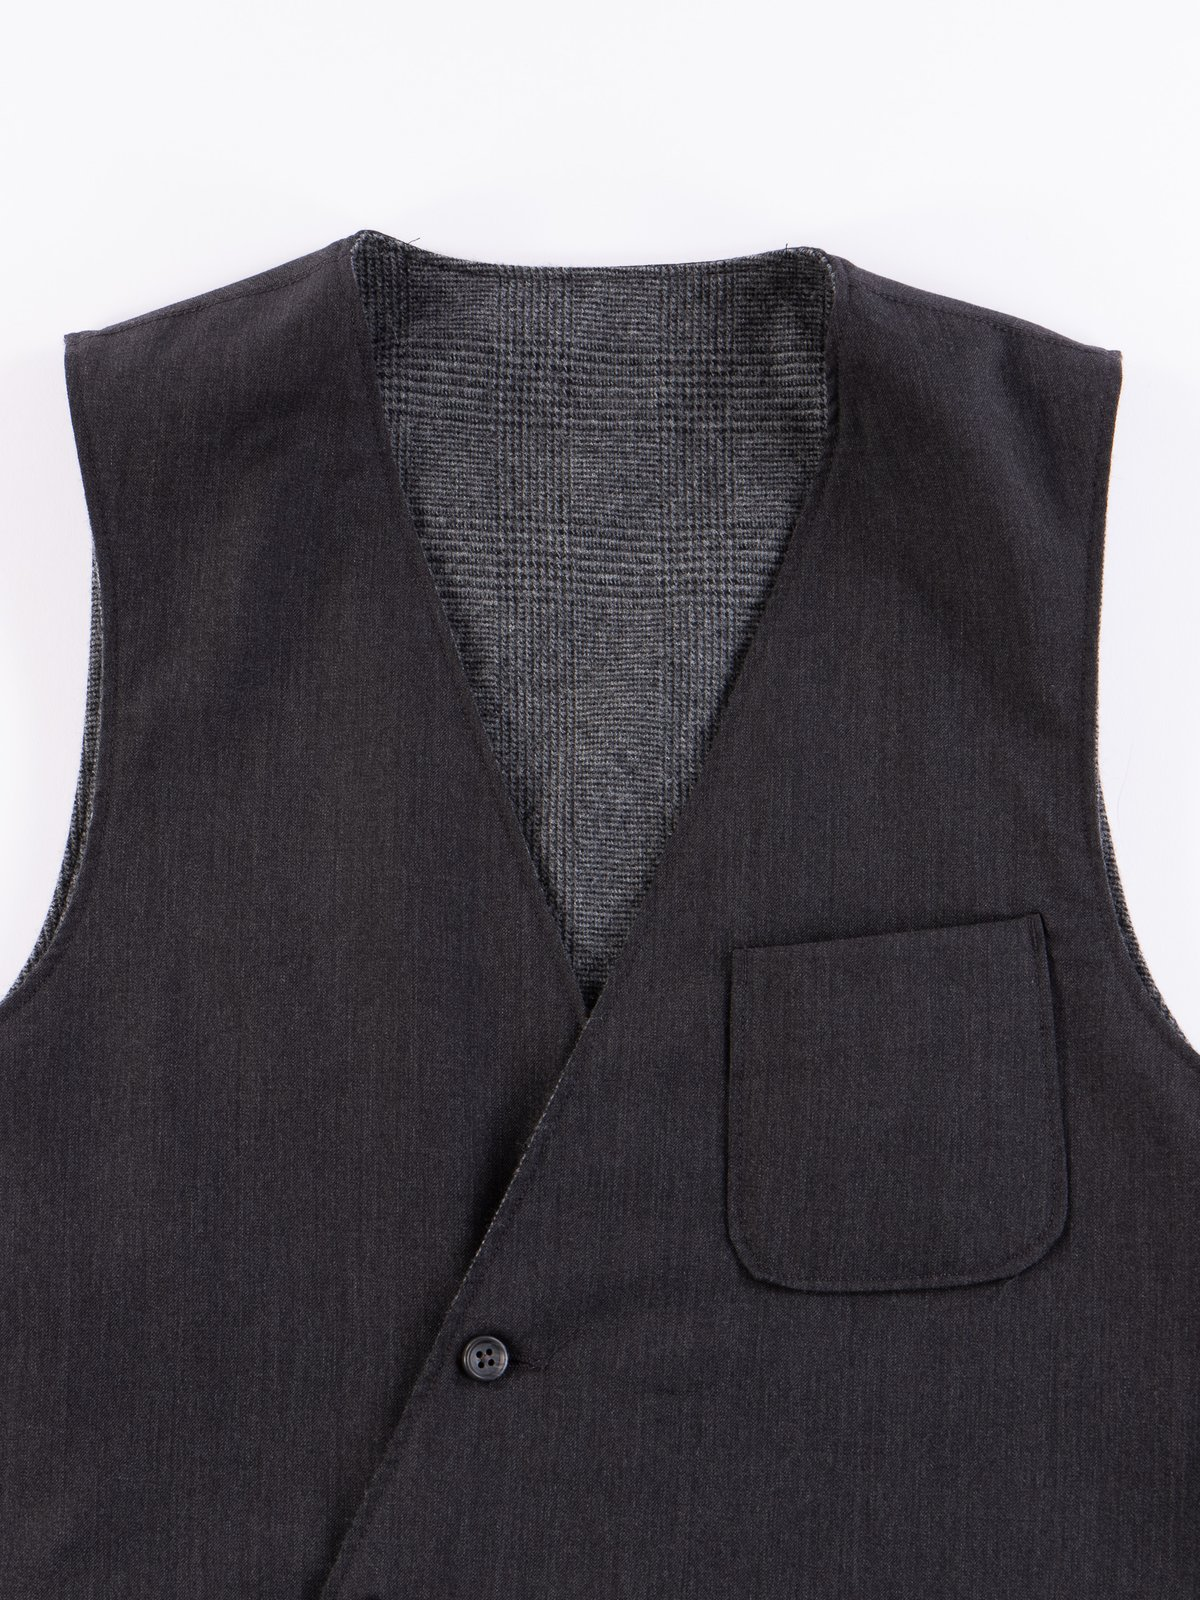 Charcoal Worsted Wool Gabardine Reversible Vest - Image 3